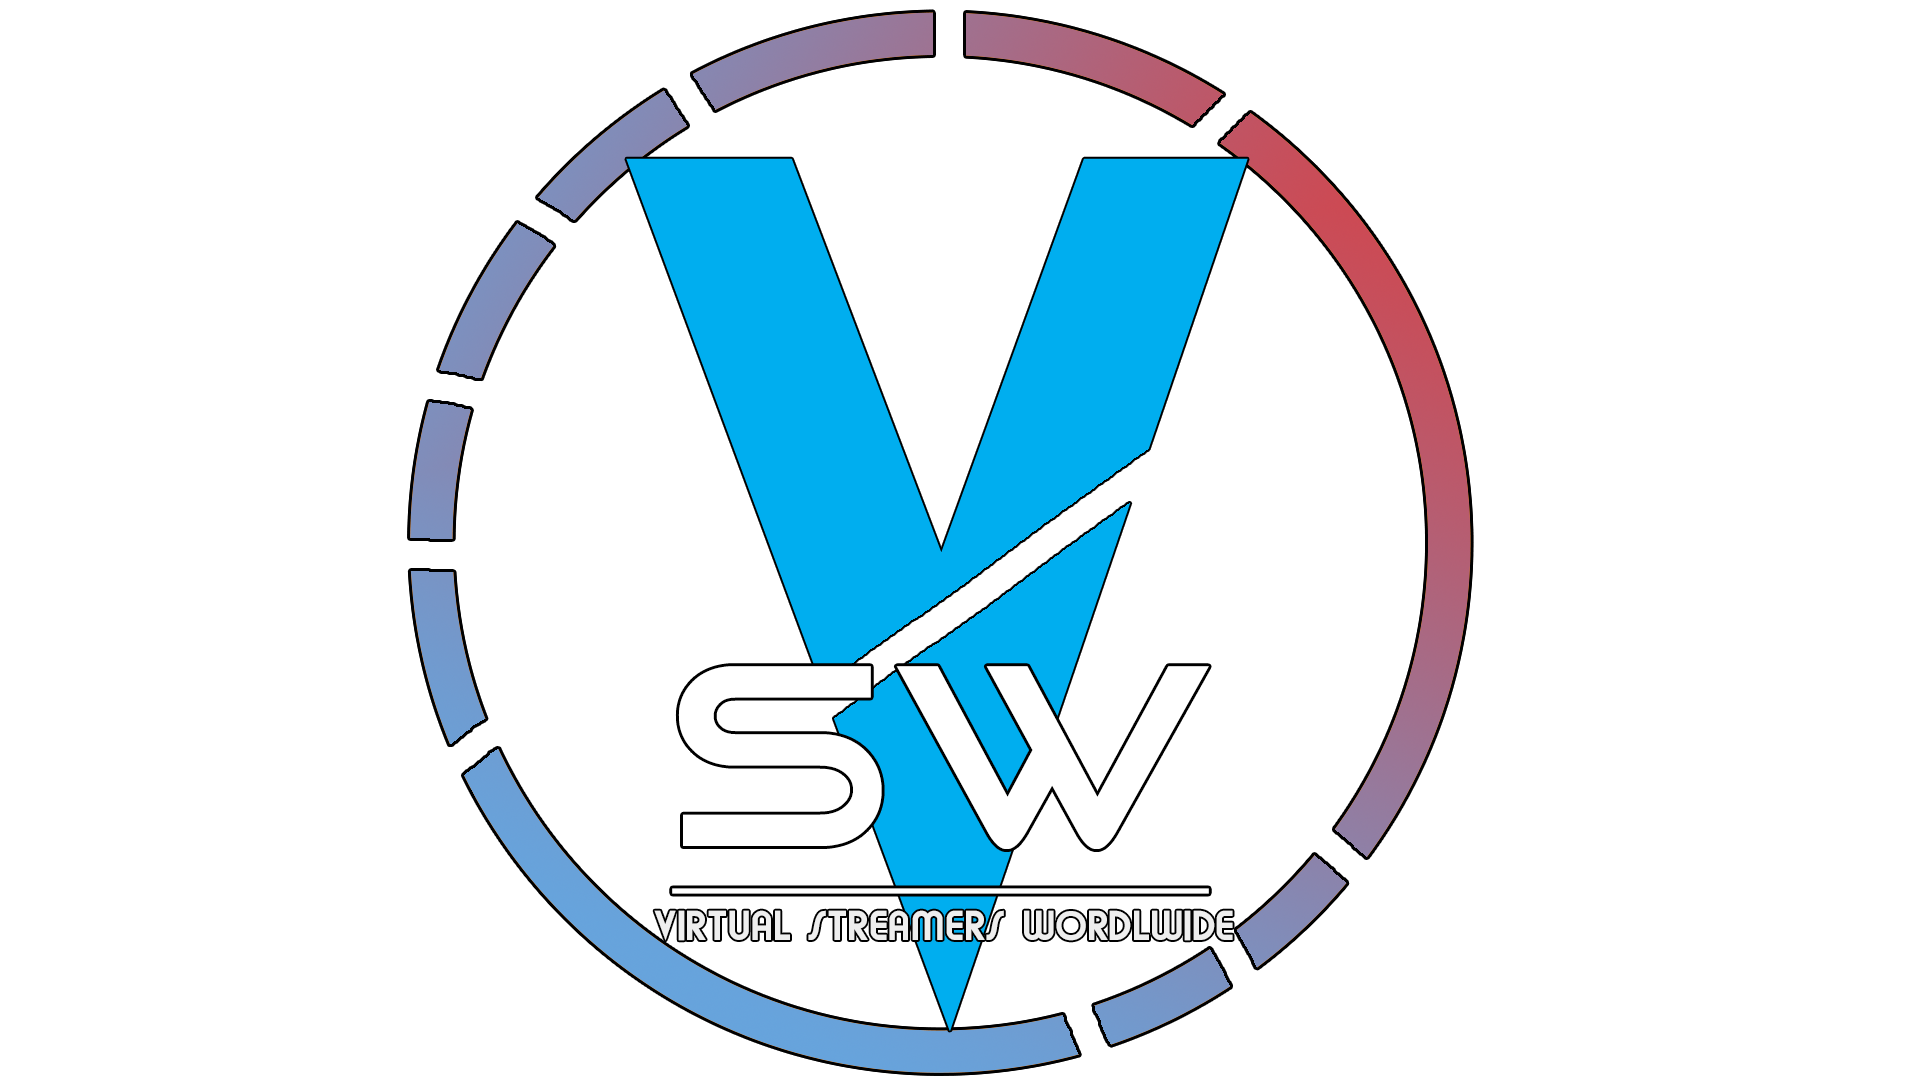 View stats for VSW - Virtual Streamers Worldwide